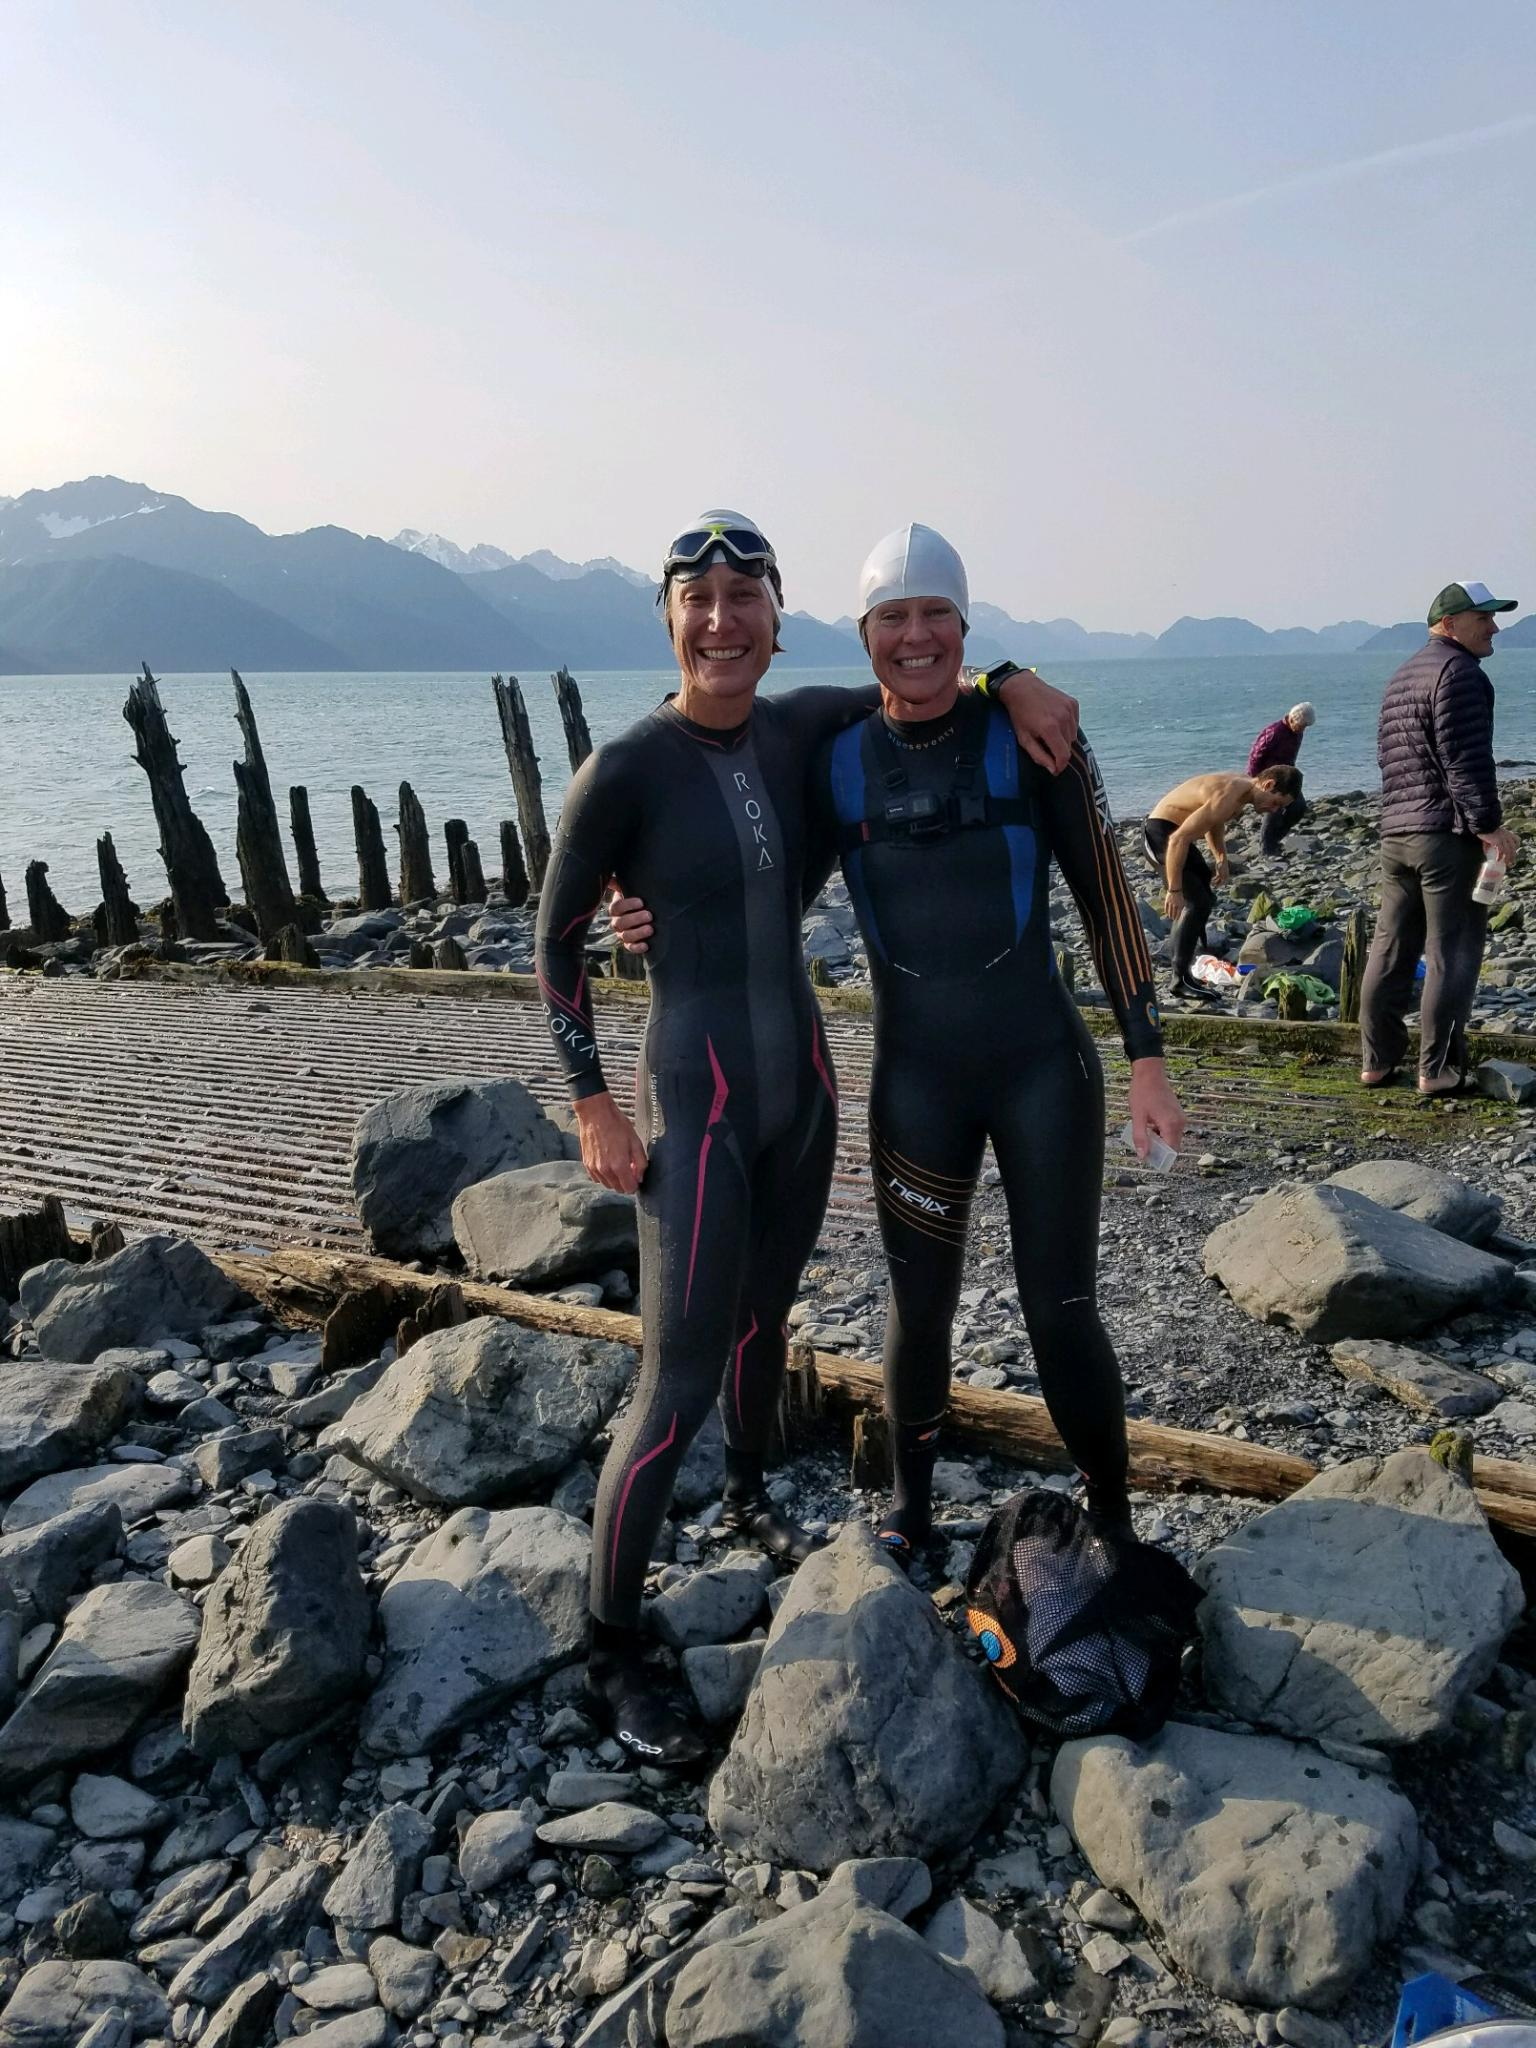 Mary and I moments after our first time swimming in the frigid waters of Resurrection Bay in Seward, Alaska.